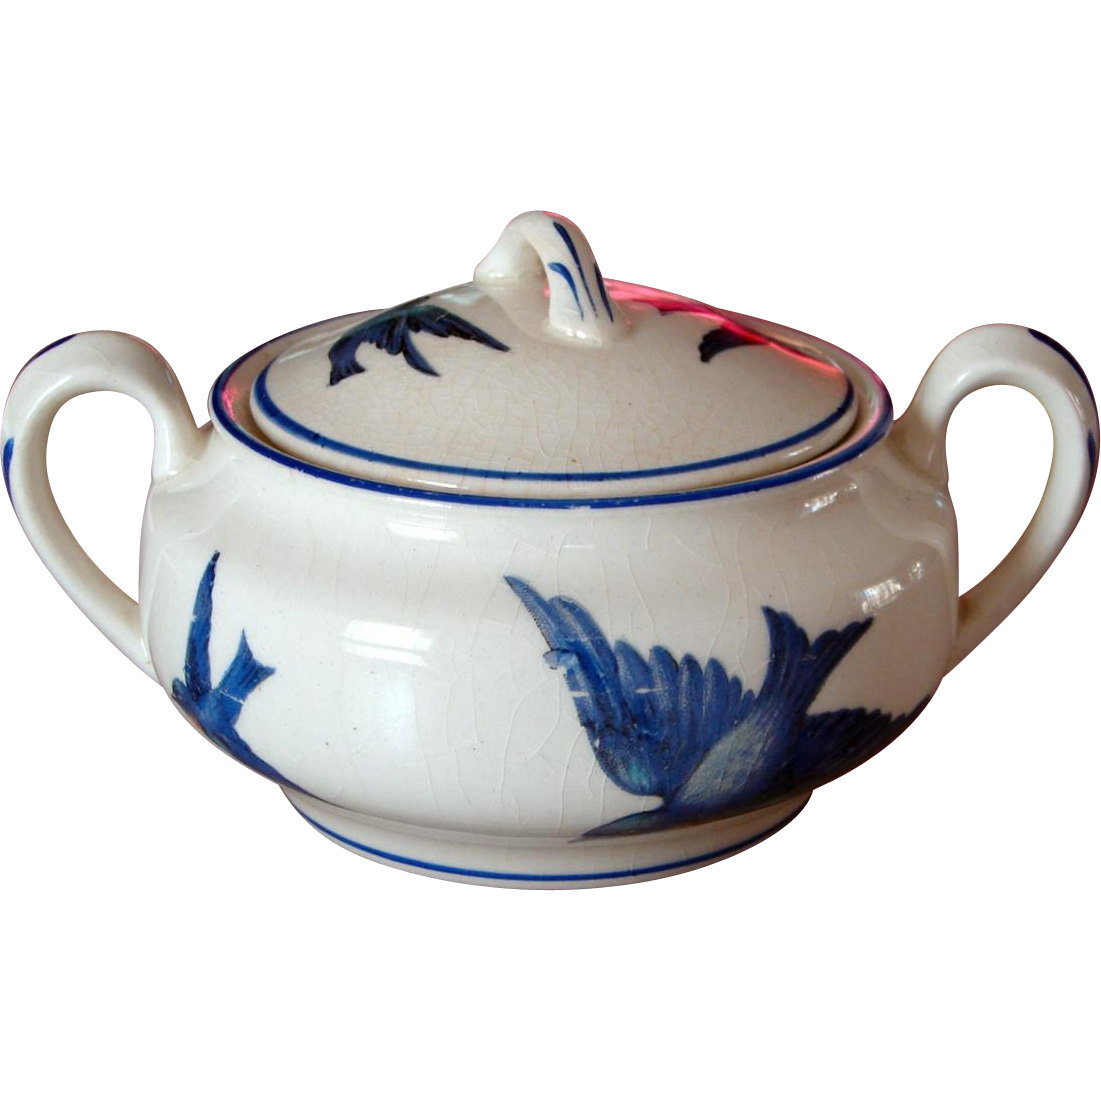 Circa 1907 Knowles Taylor & Knowles Bluebird China Covered Sugar Bowl